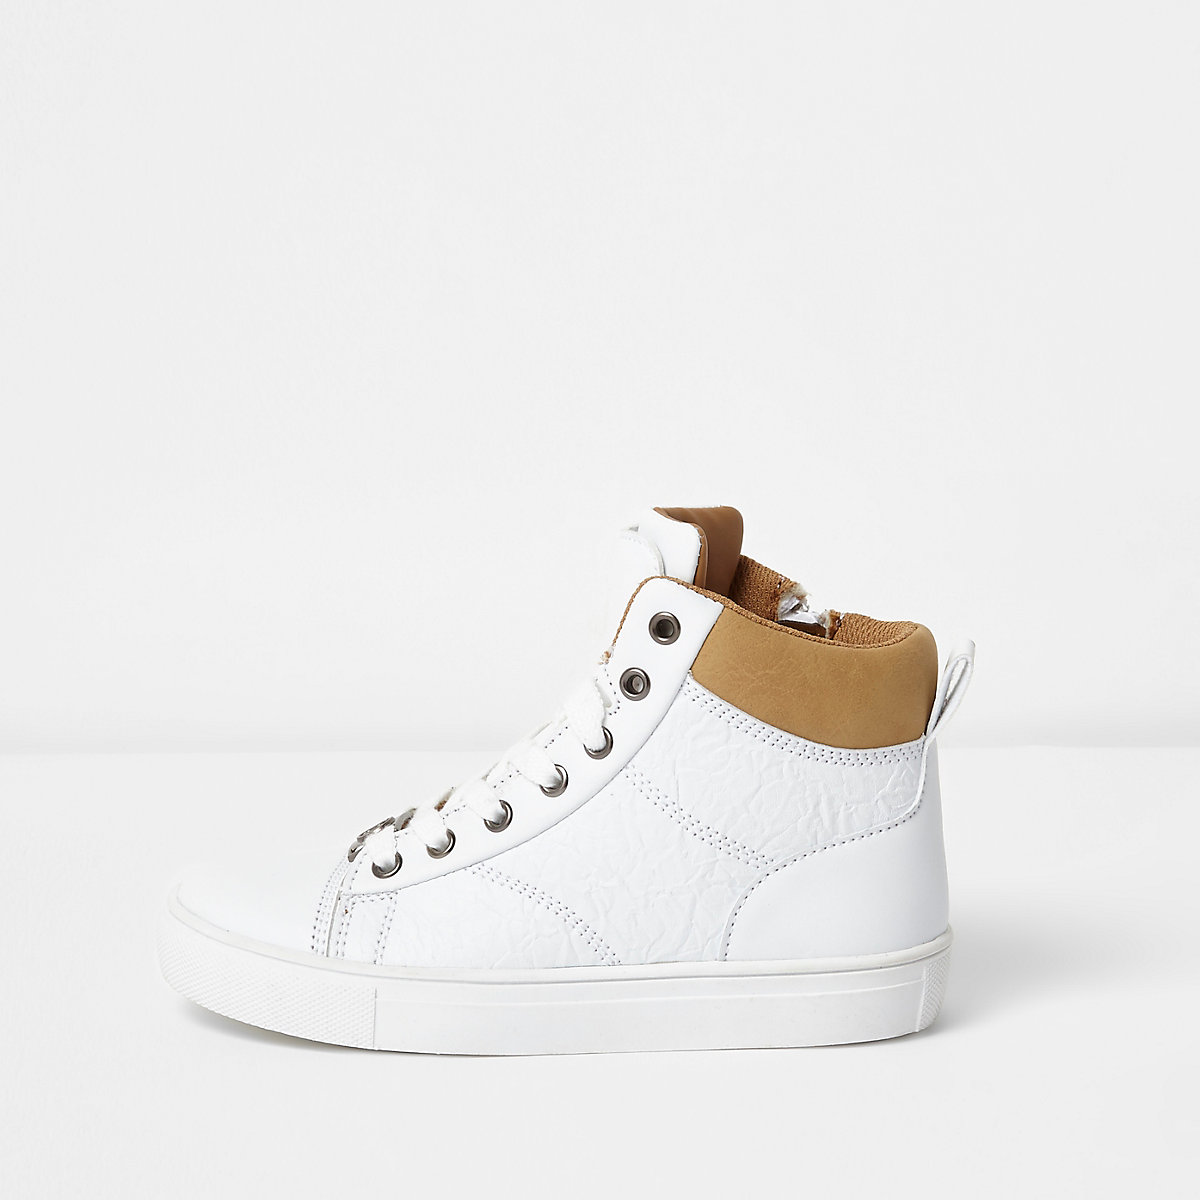 Boys white double tongue high top sneakers